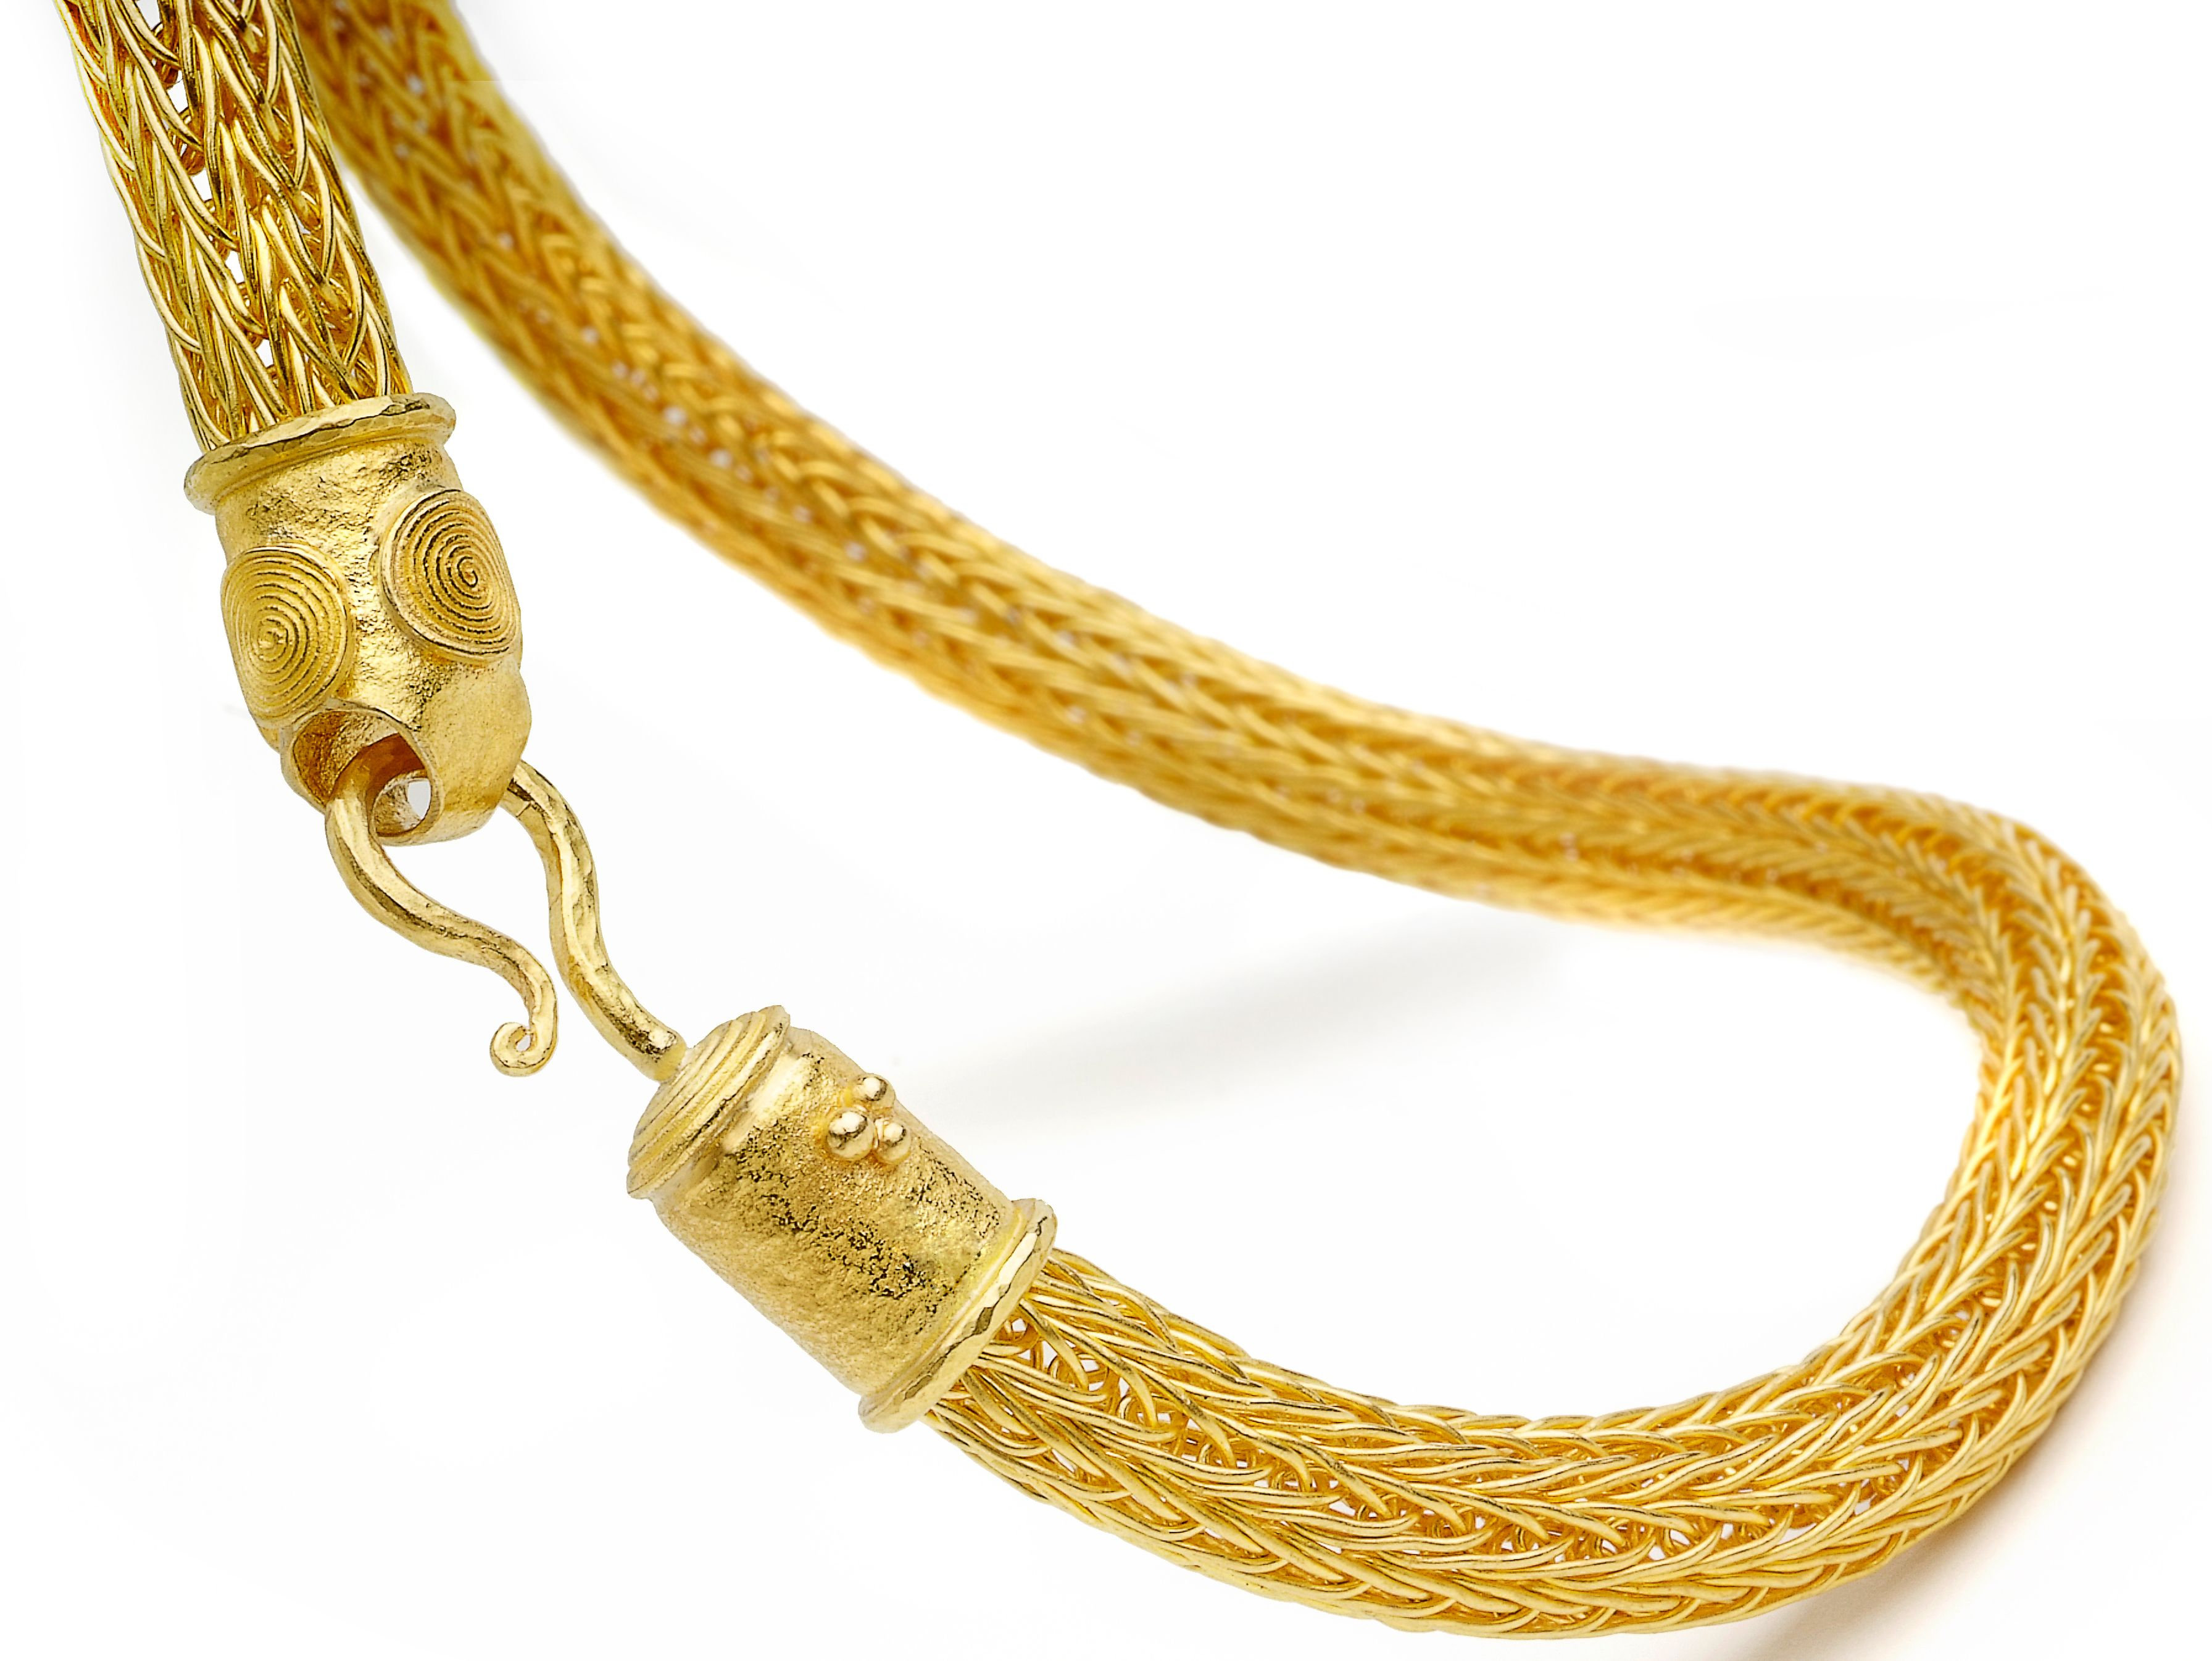 22k hand knitted gold chain by Osnat Weingarten | Inspired by ...